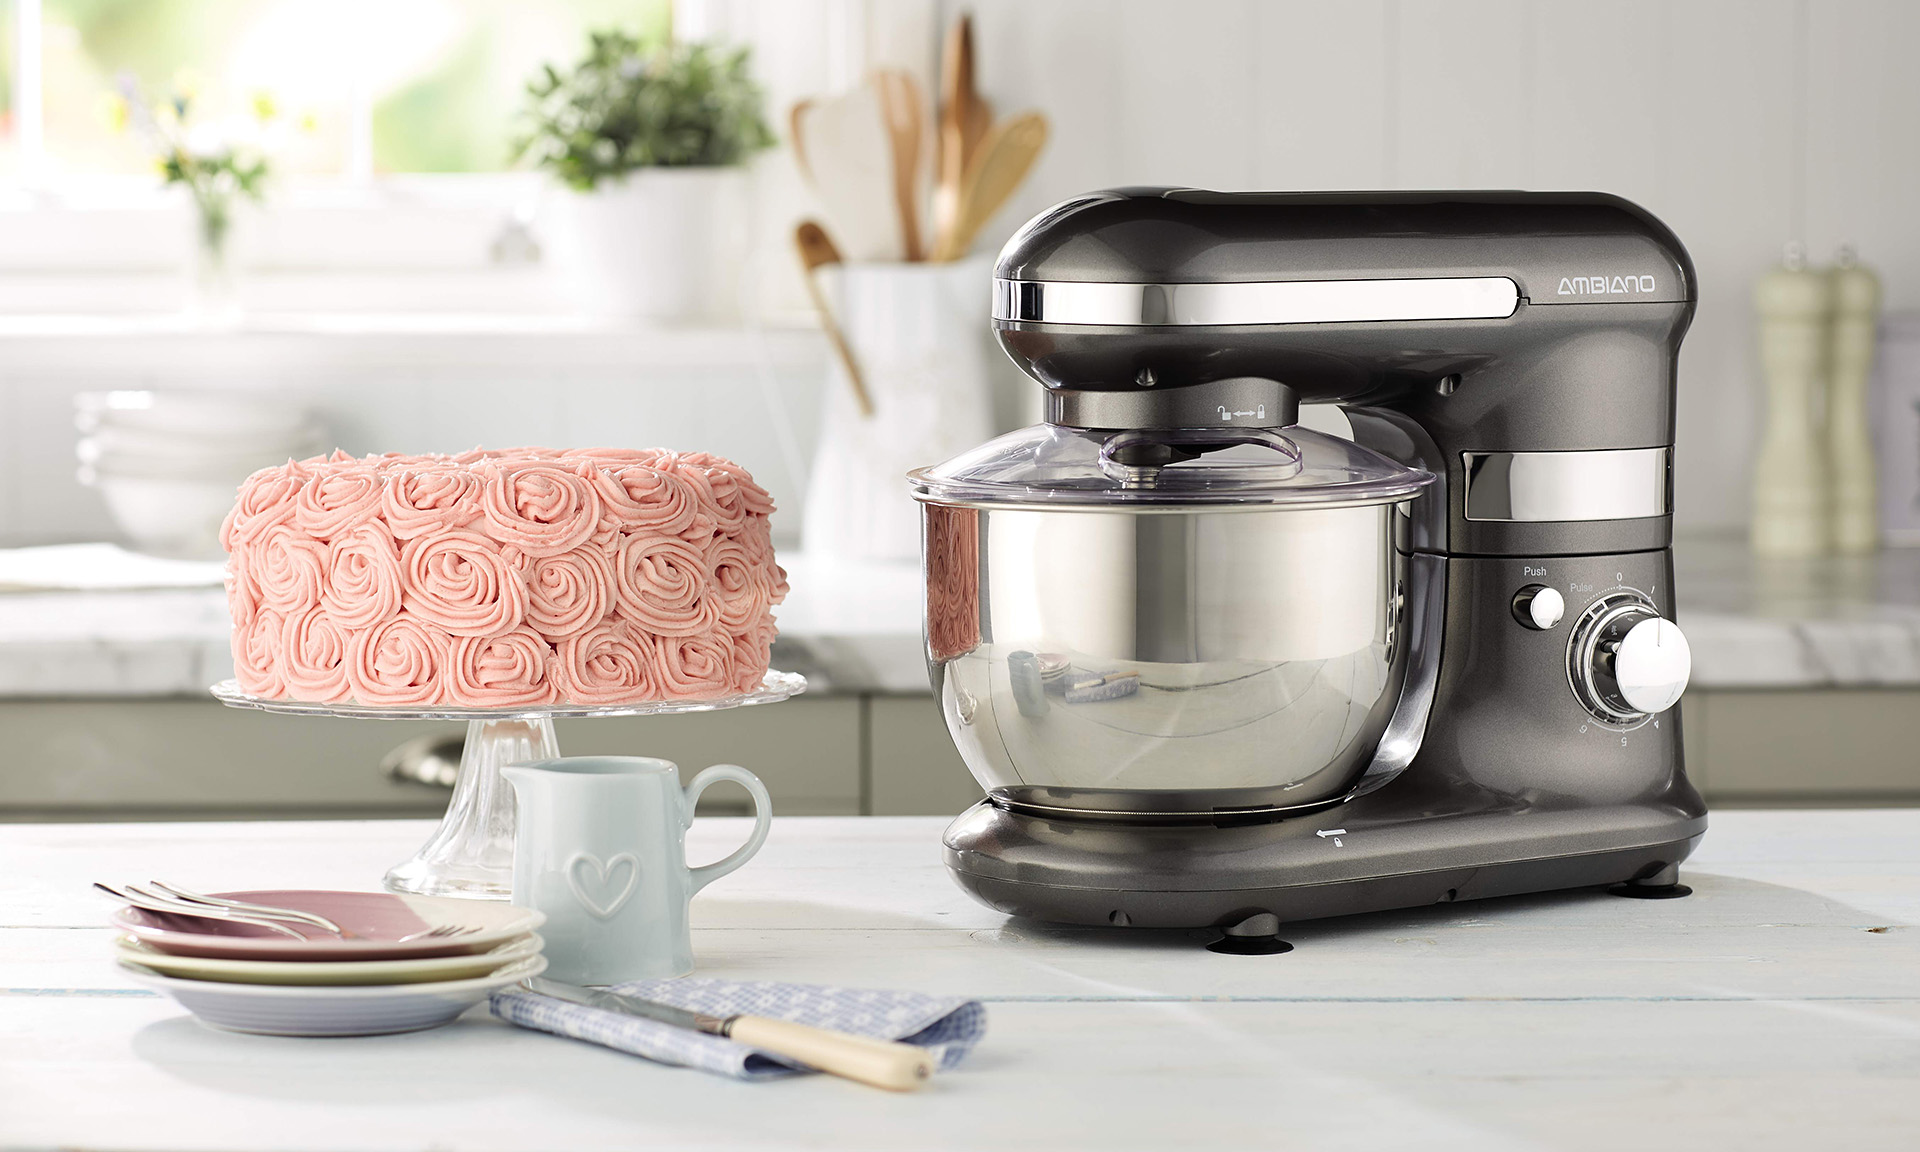 Aldi launches £65 stand mixer ahead of Bake Off 2017